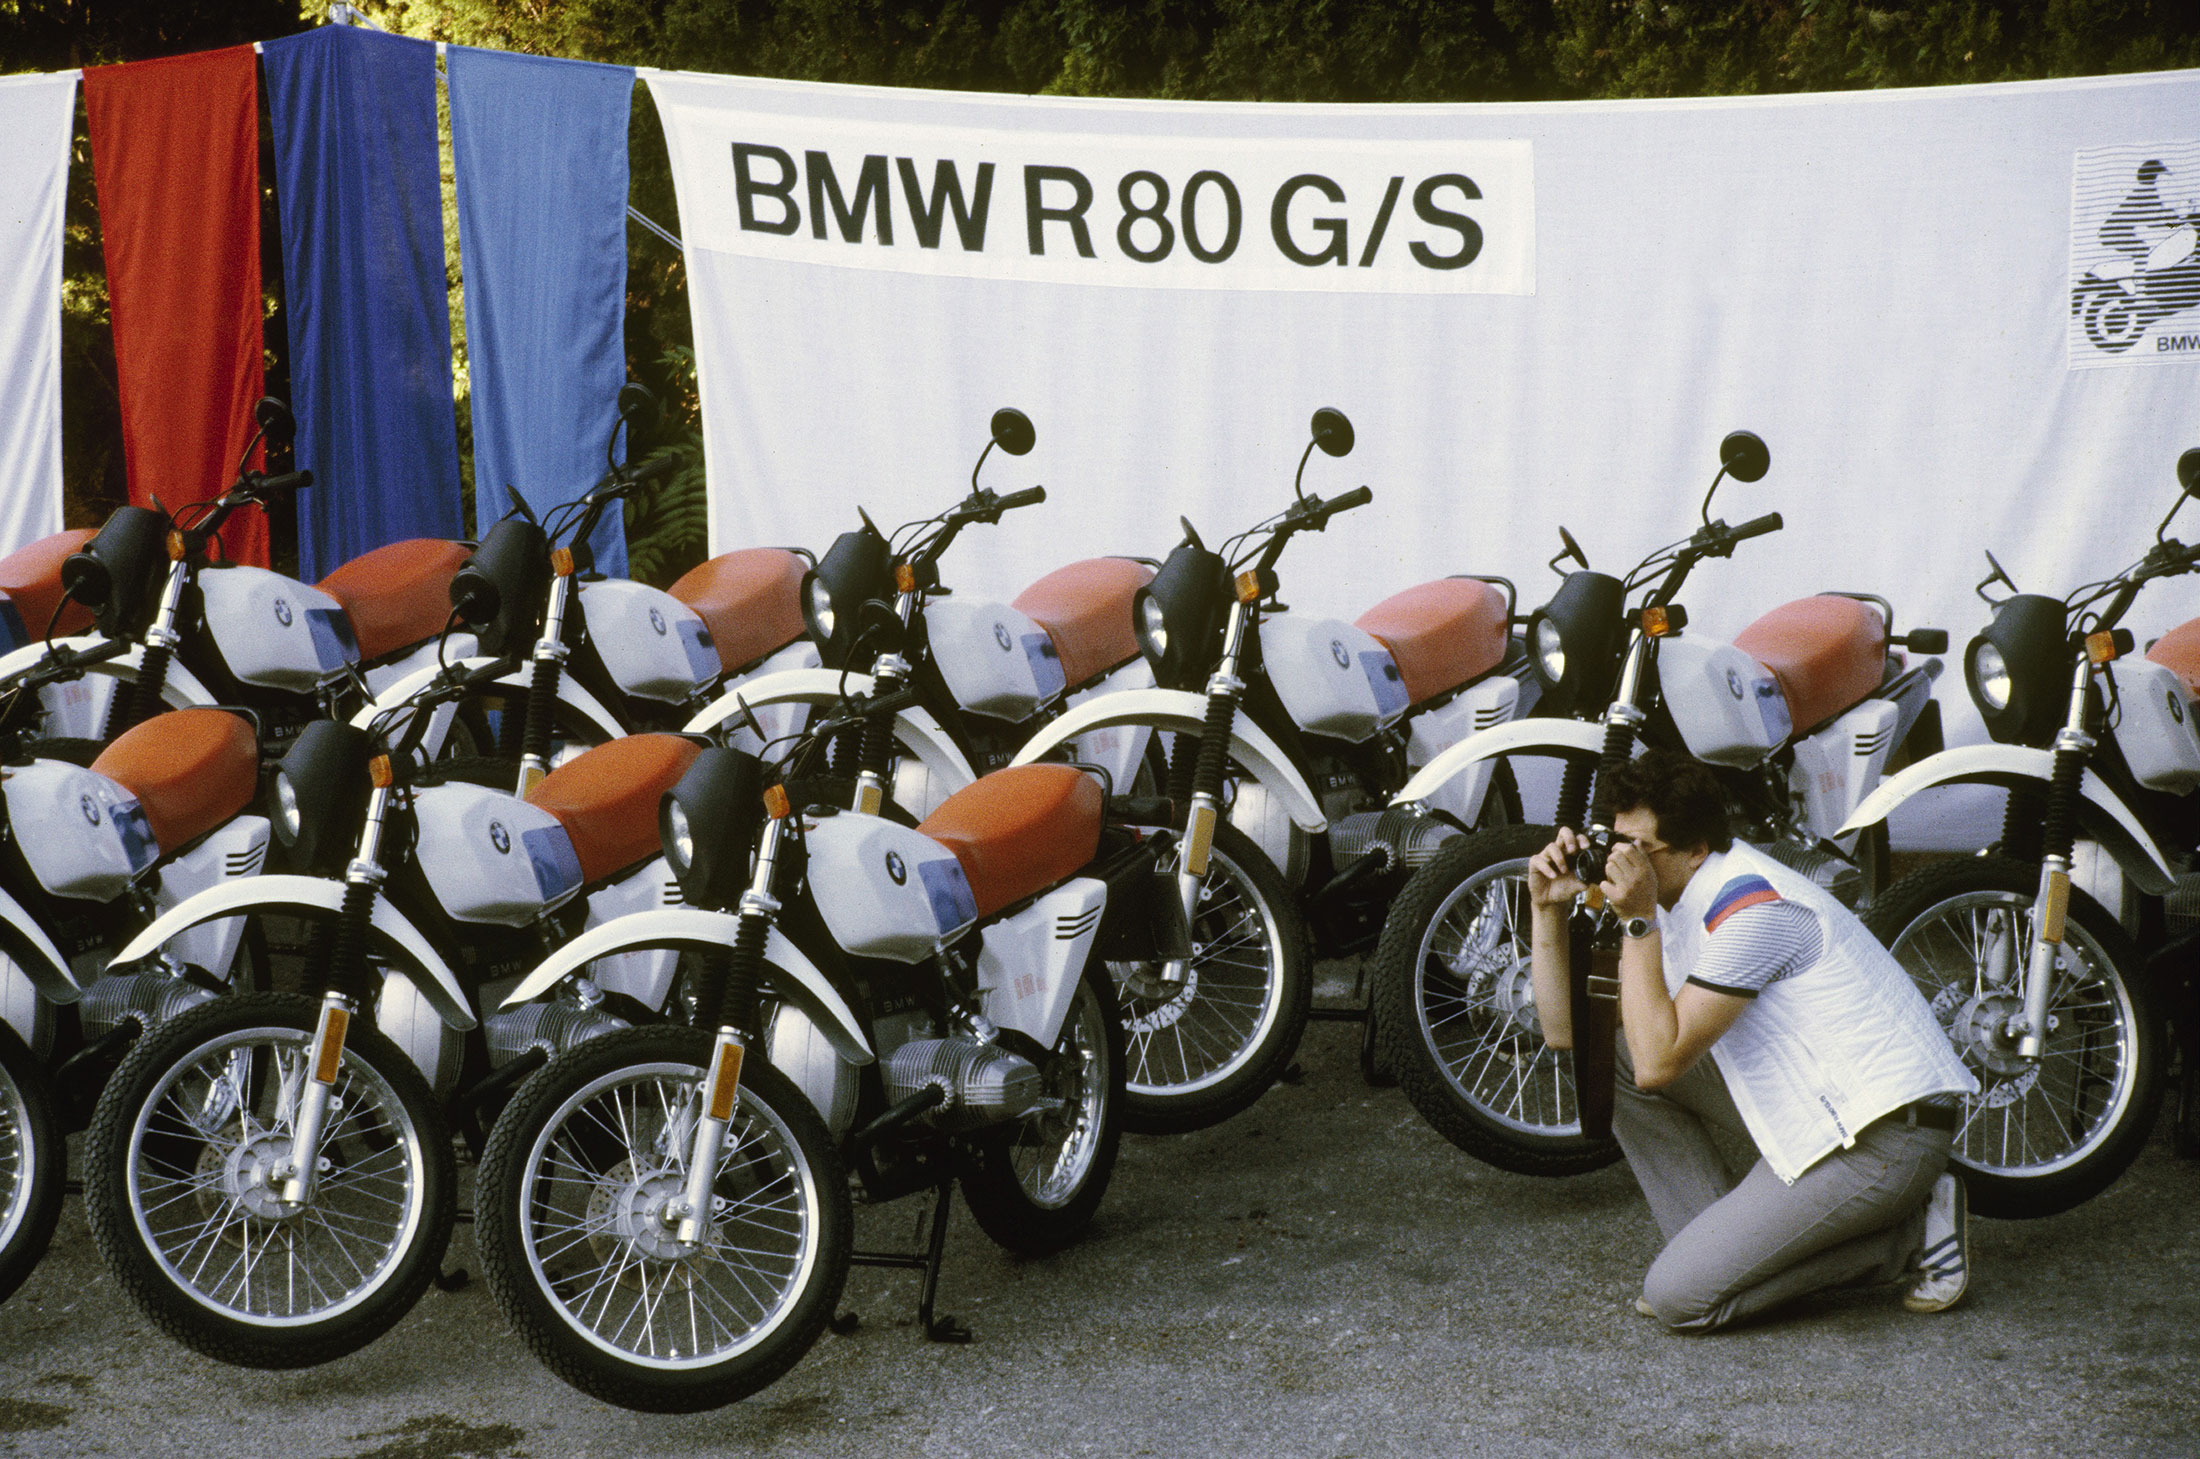 The BMW R80G/S